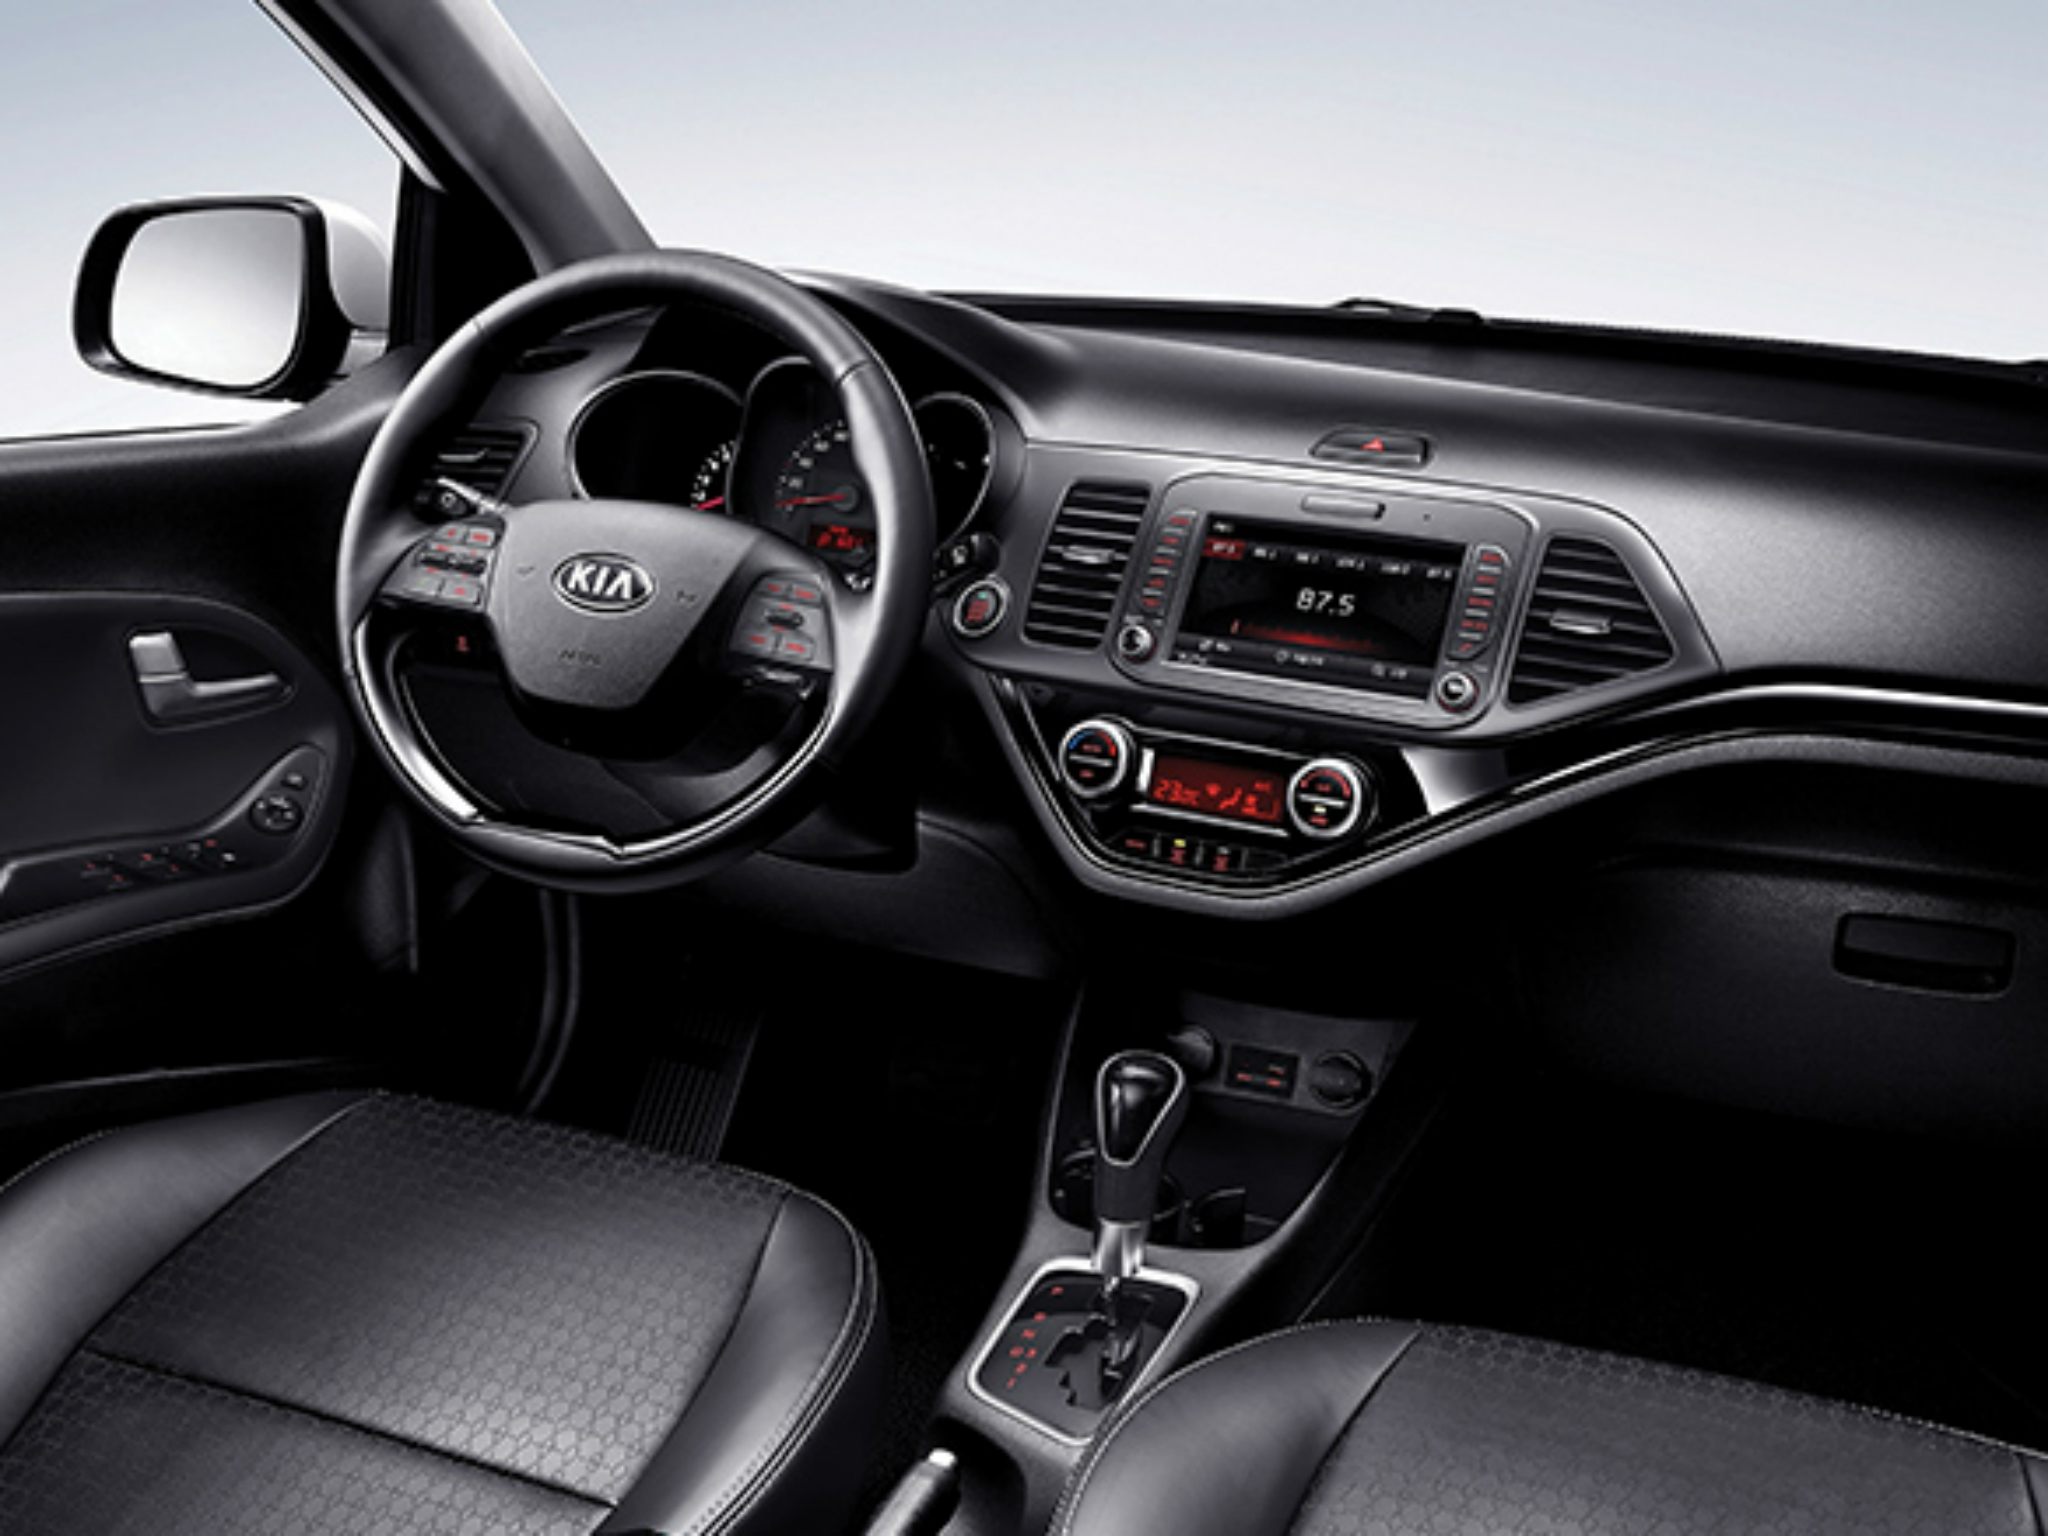 00-Kia-Morning-Interior-dash.jpg